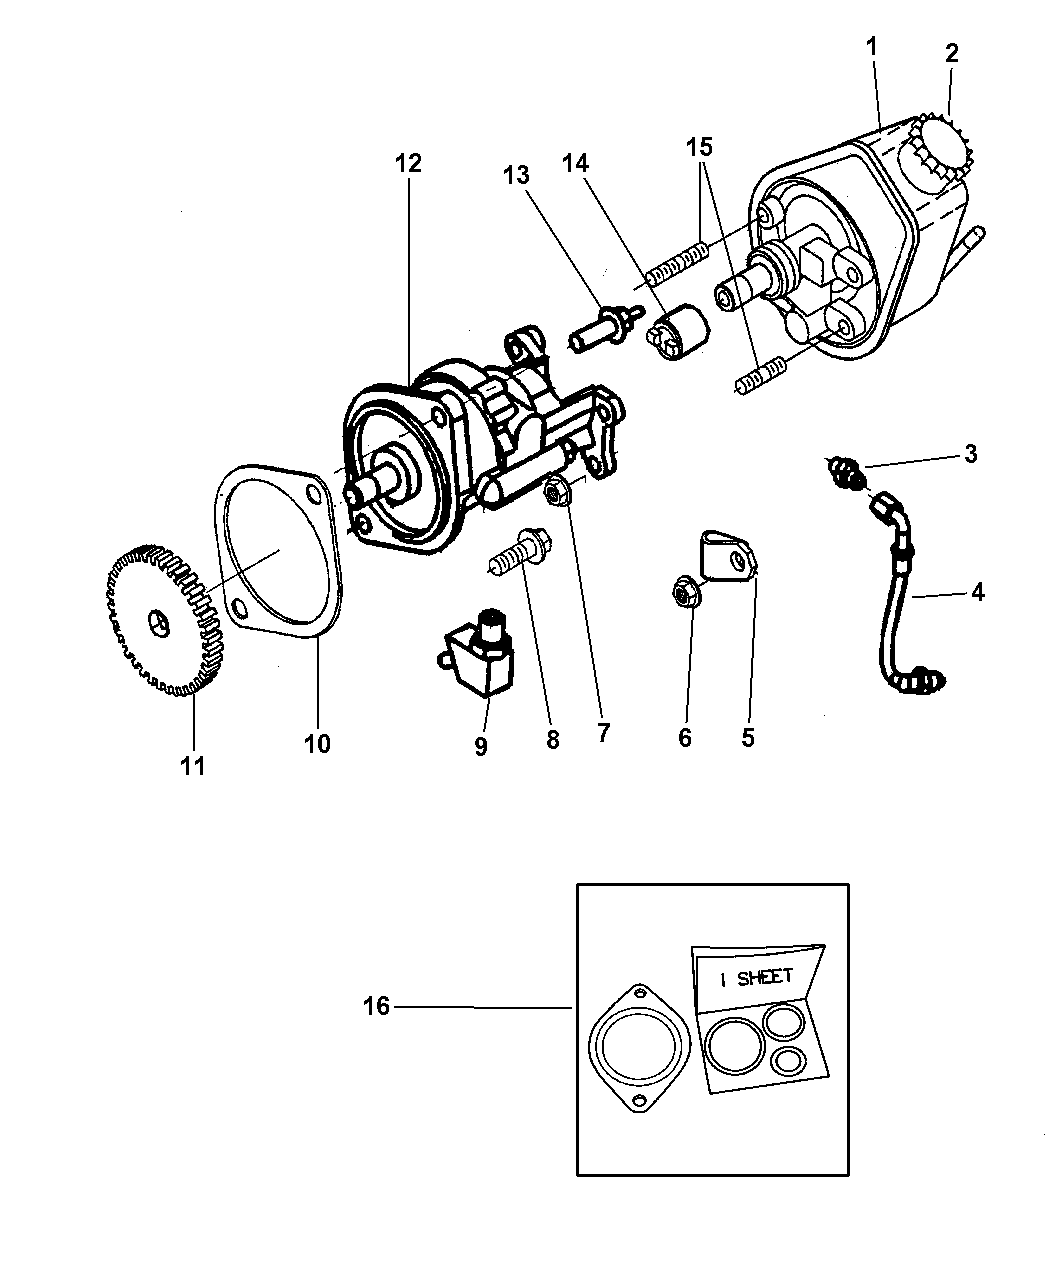 dodge ram 1500 fuel system diagram dodge pump diagram auto wiring diagrams  dodge pump diagram auto wiring diagrams